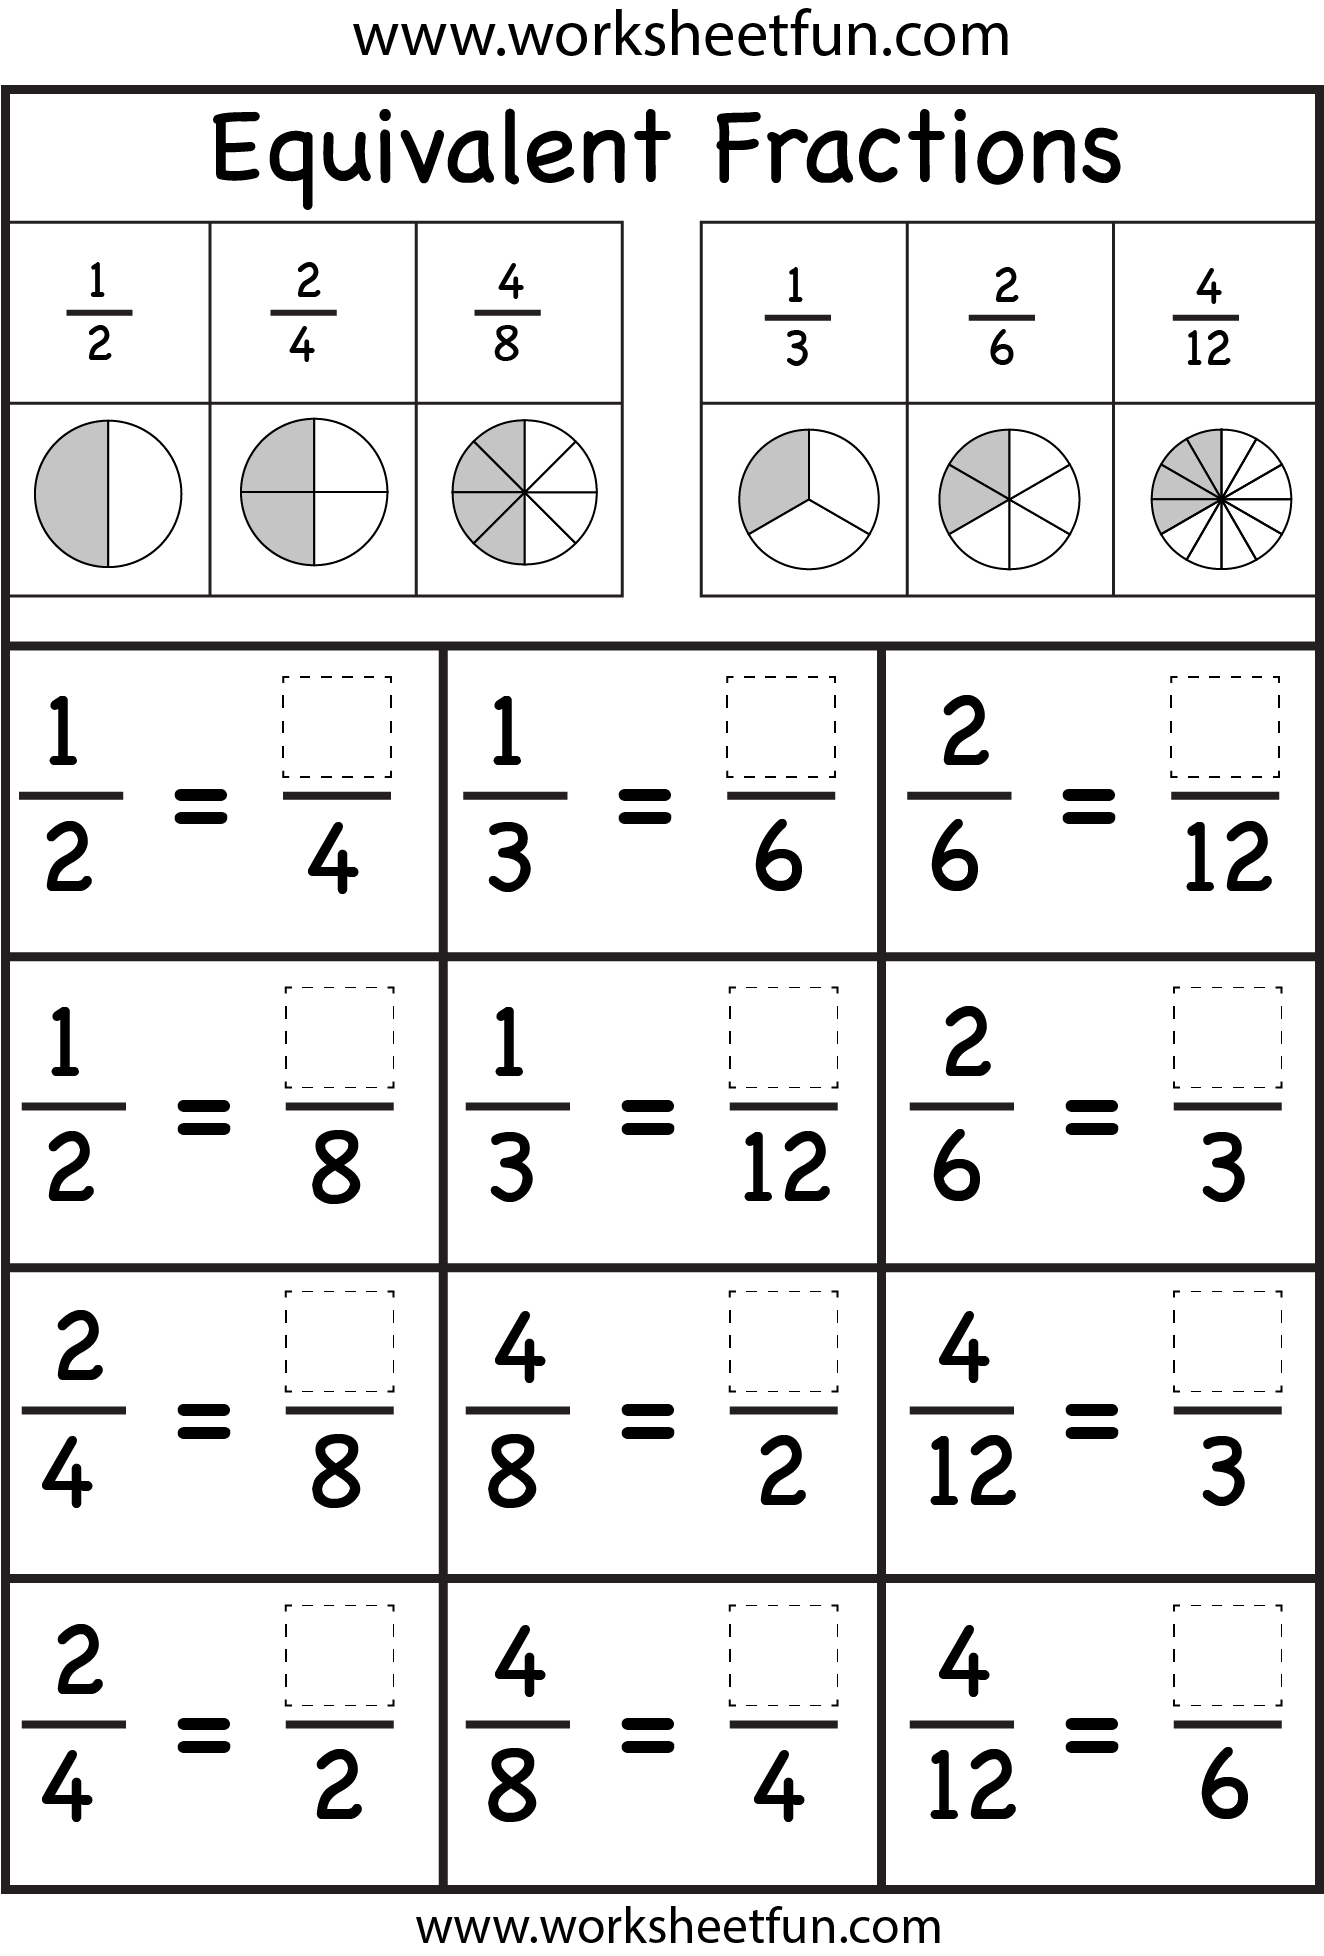 Pin By Kathie Bingham On Education Math Math Fractions Worksheets Math Fractions Fractions Worksheets